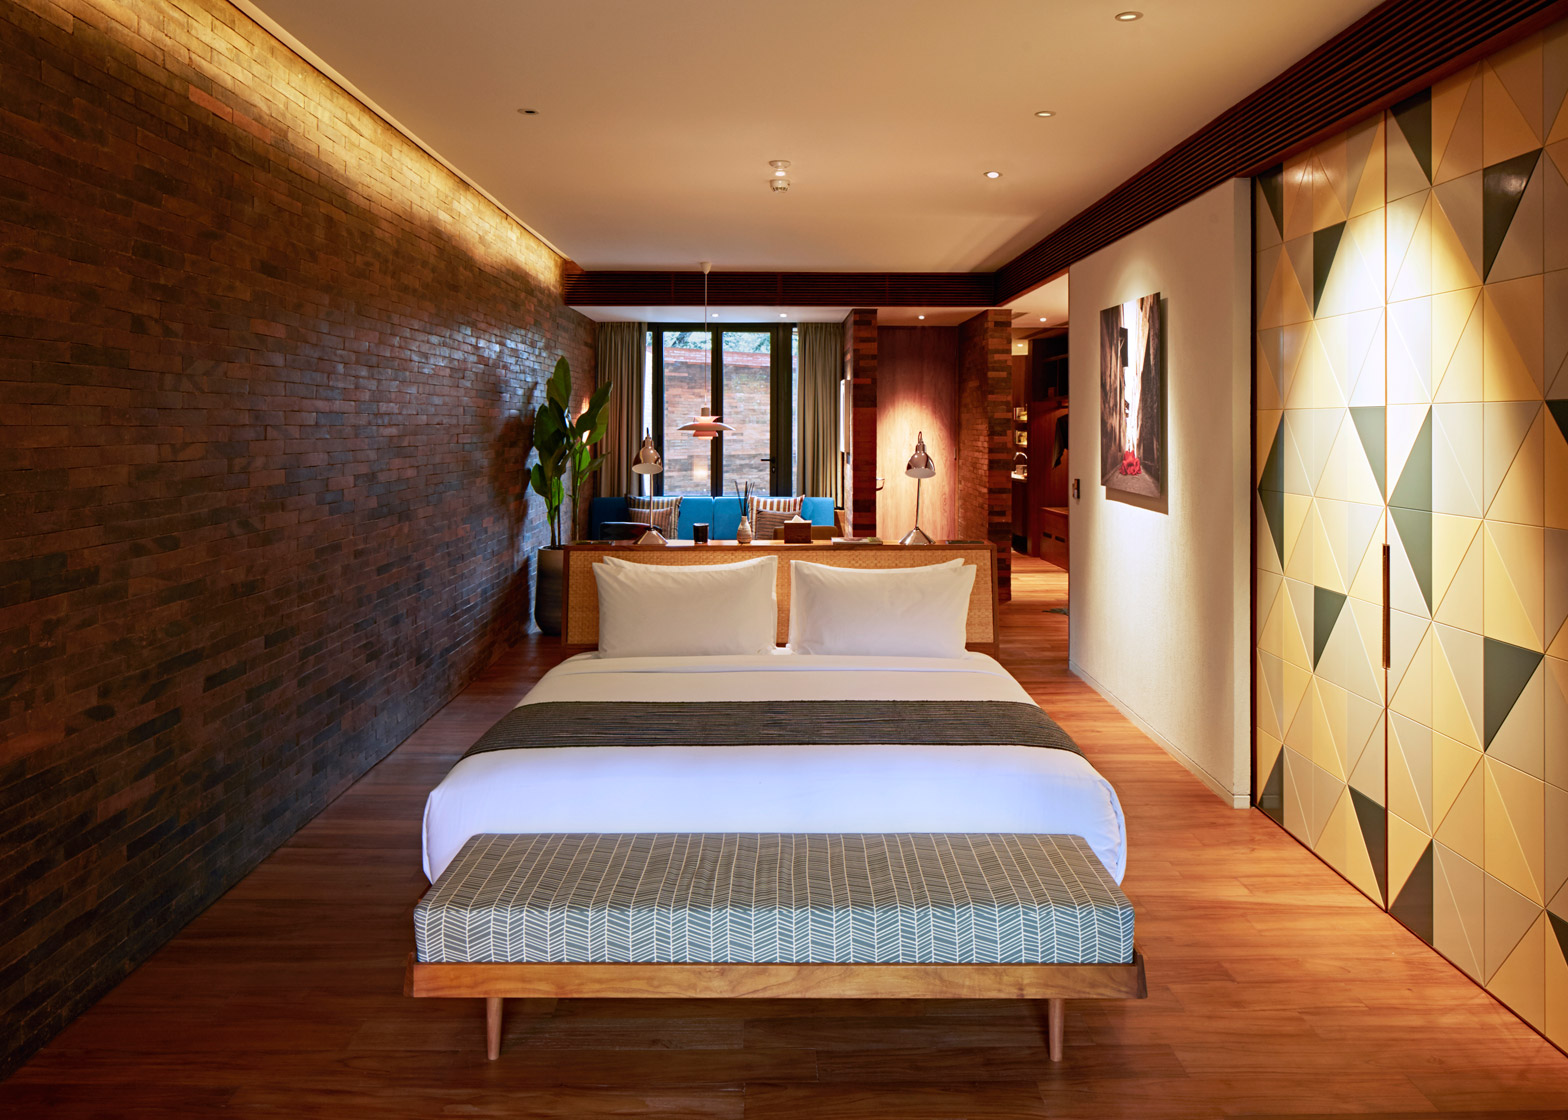 14 Of 18 Katamama Boutique Hotel By Andra Matin In Bali Indonesia Interiors And Architecture